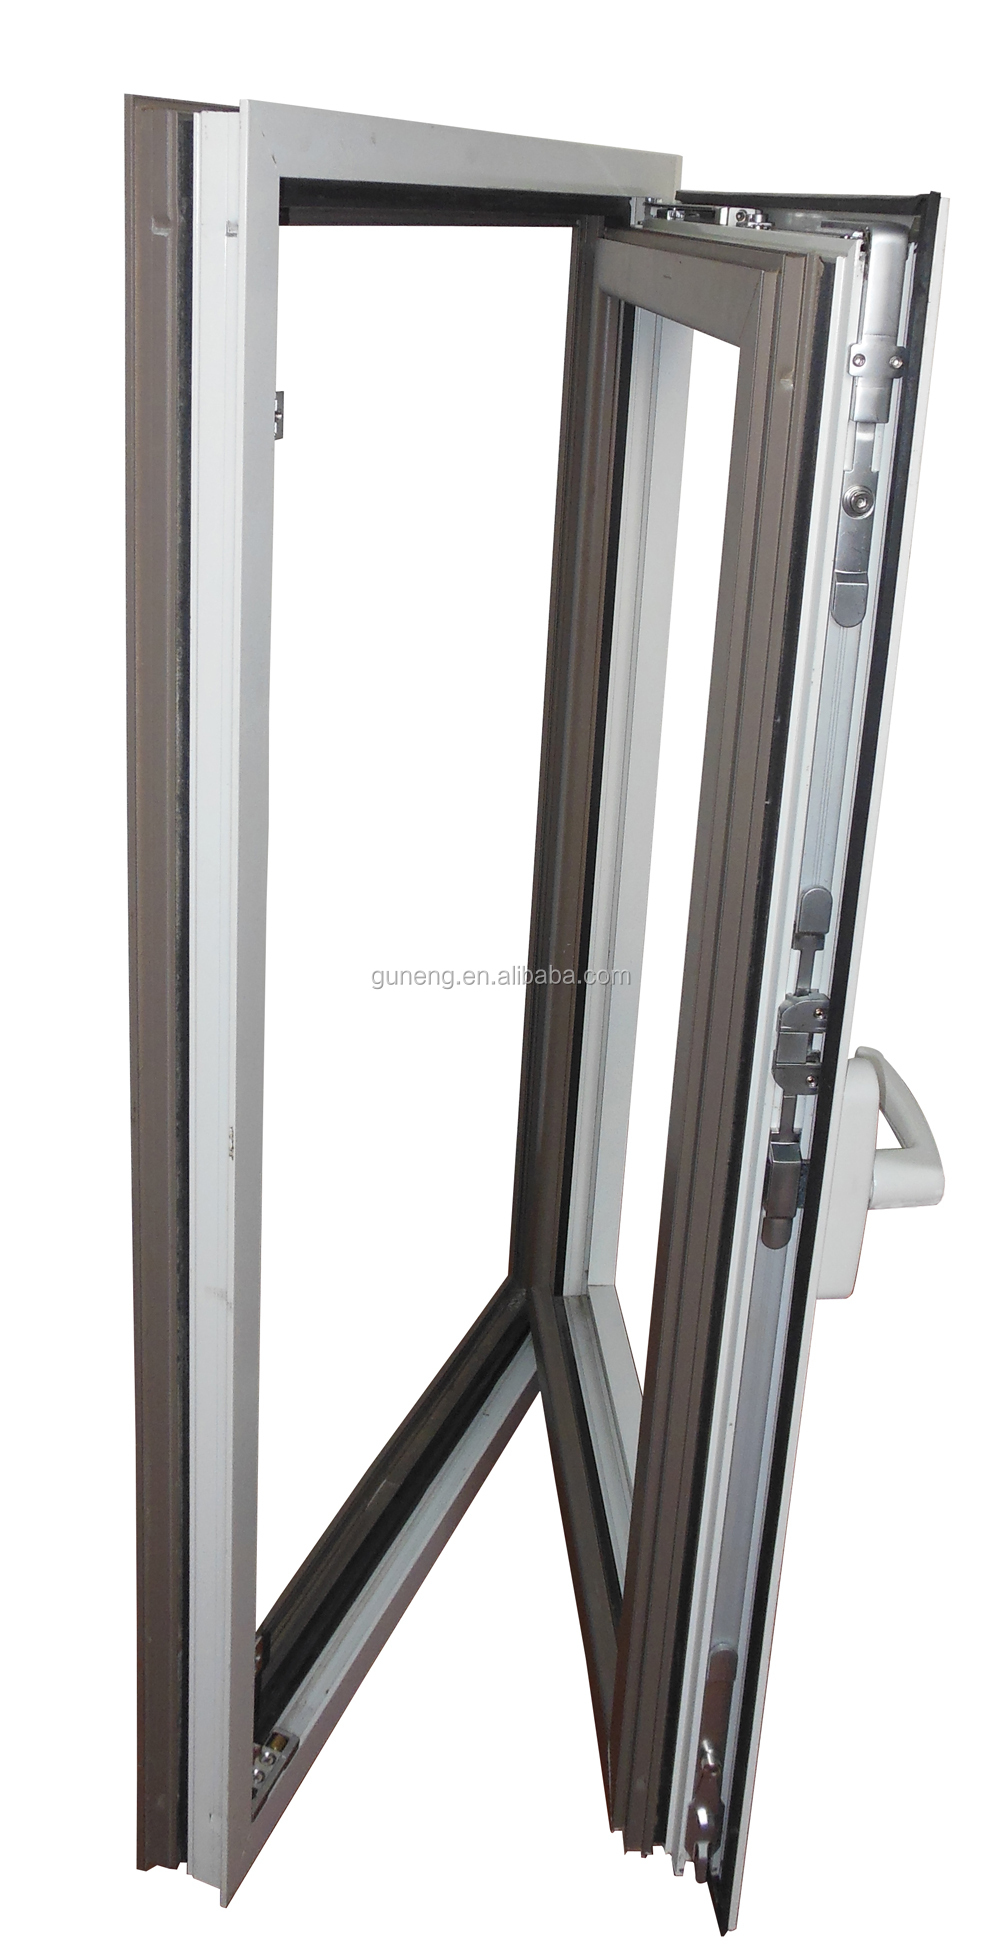 Tilt Window Hardware At First : Aluminum window tilt and turn hinges